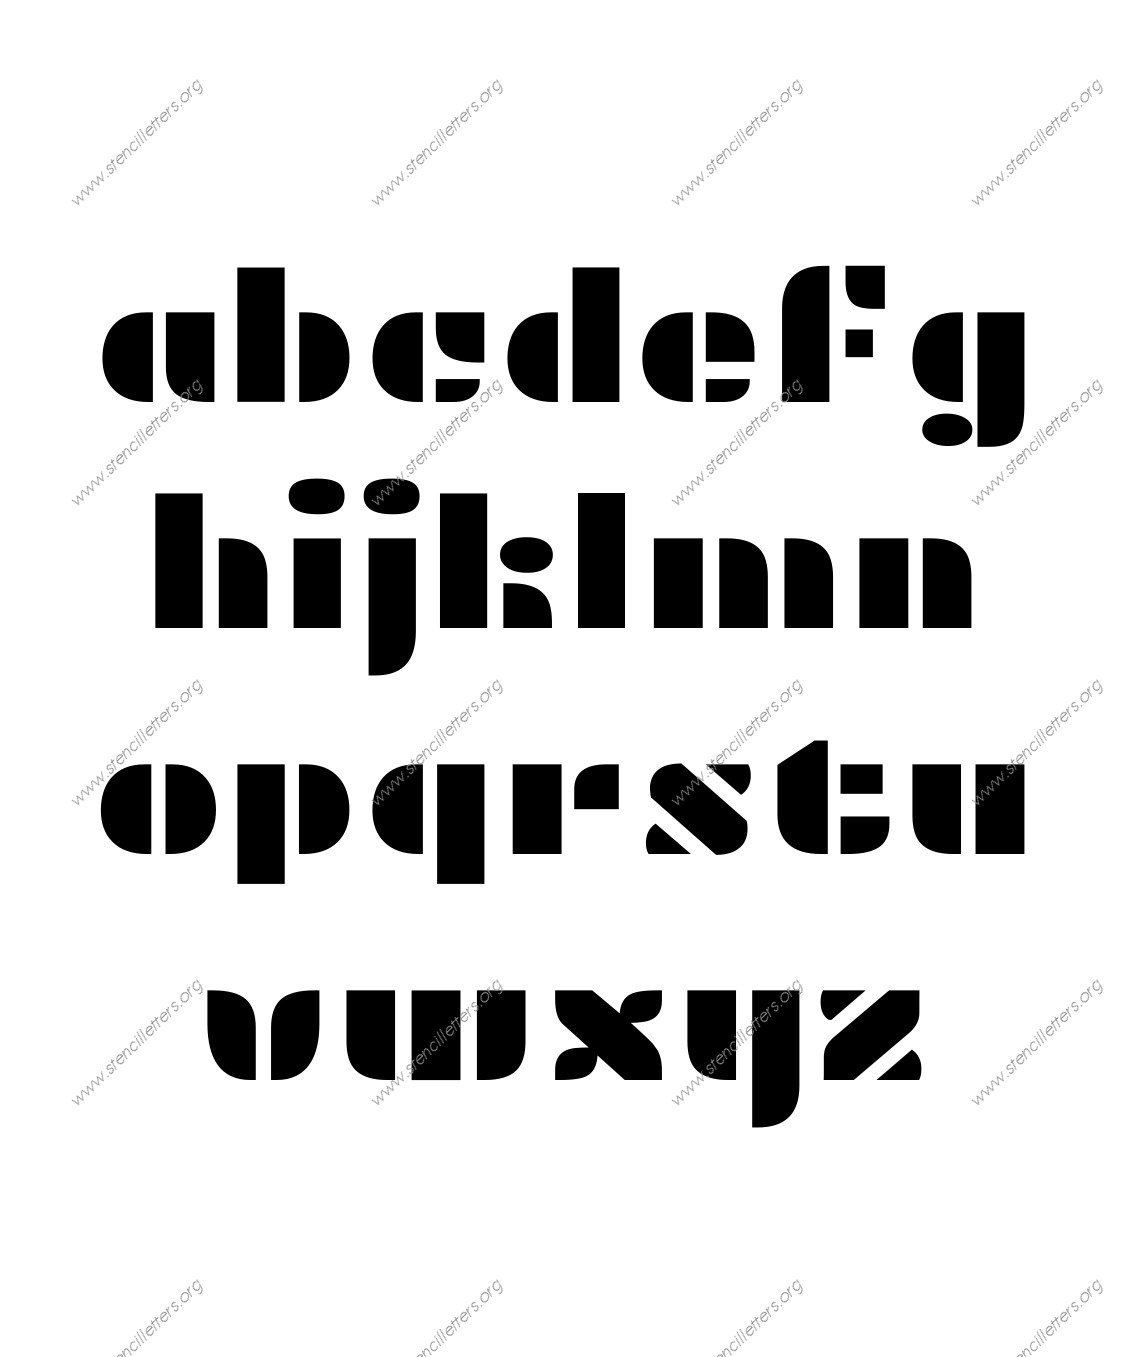 Display Decorative A to Z lowercase letter stencils